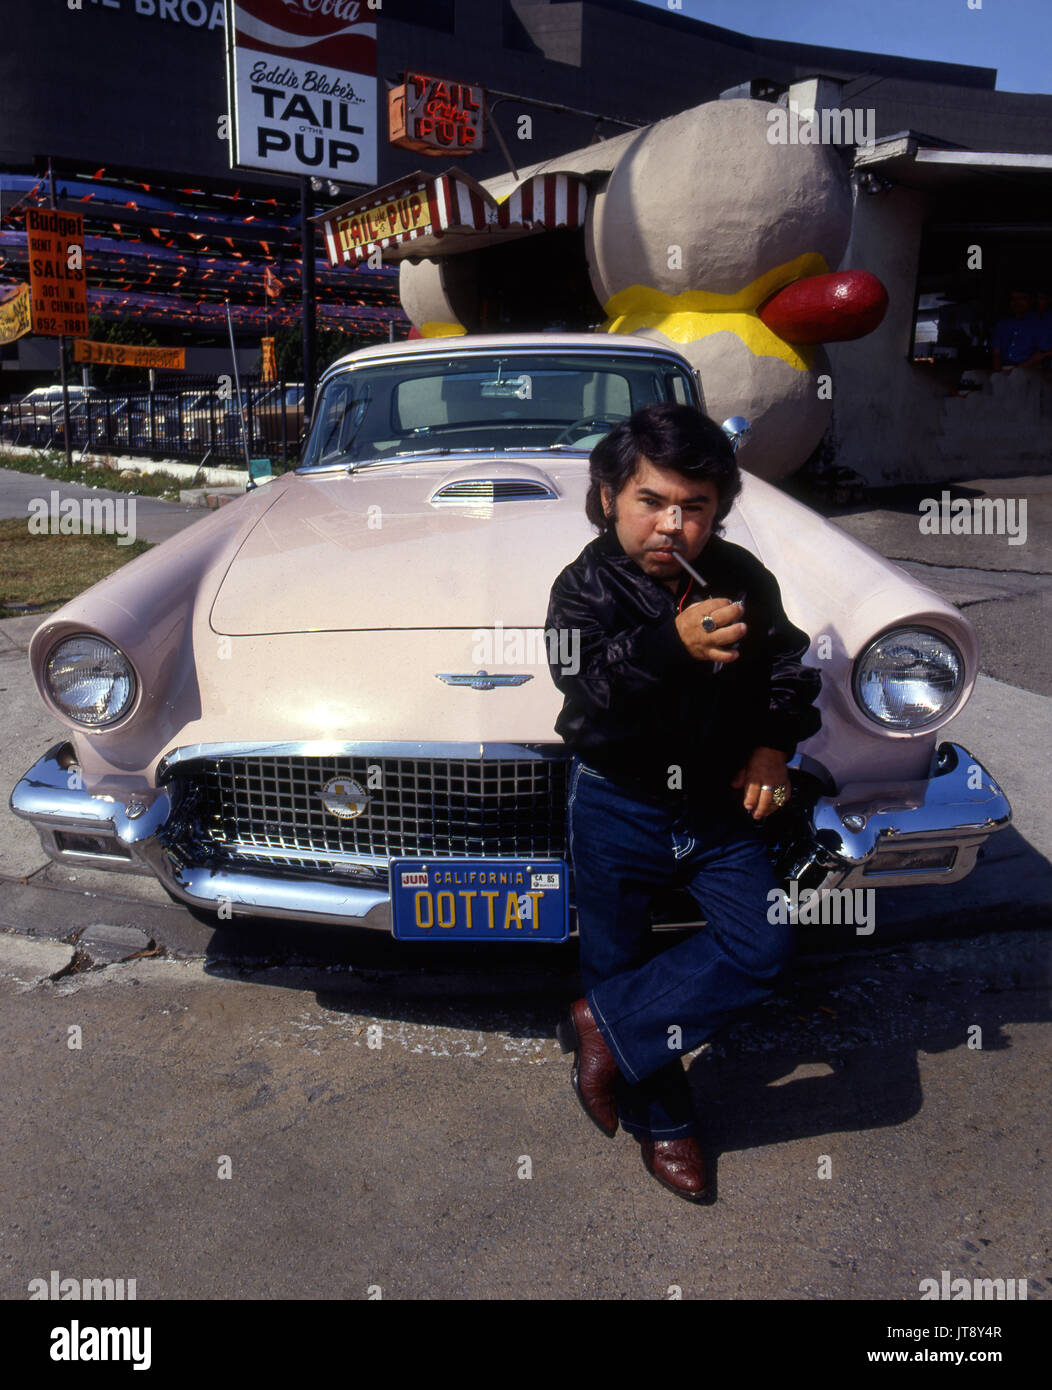 Portrait of actor Herve Villechaize with his classic T-Bird with vanity plate reading Tattoo backwards at the Tail o The Pup hot dog stand in West Hollywood circa 1984 - Stock Image